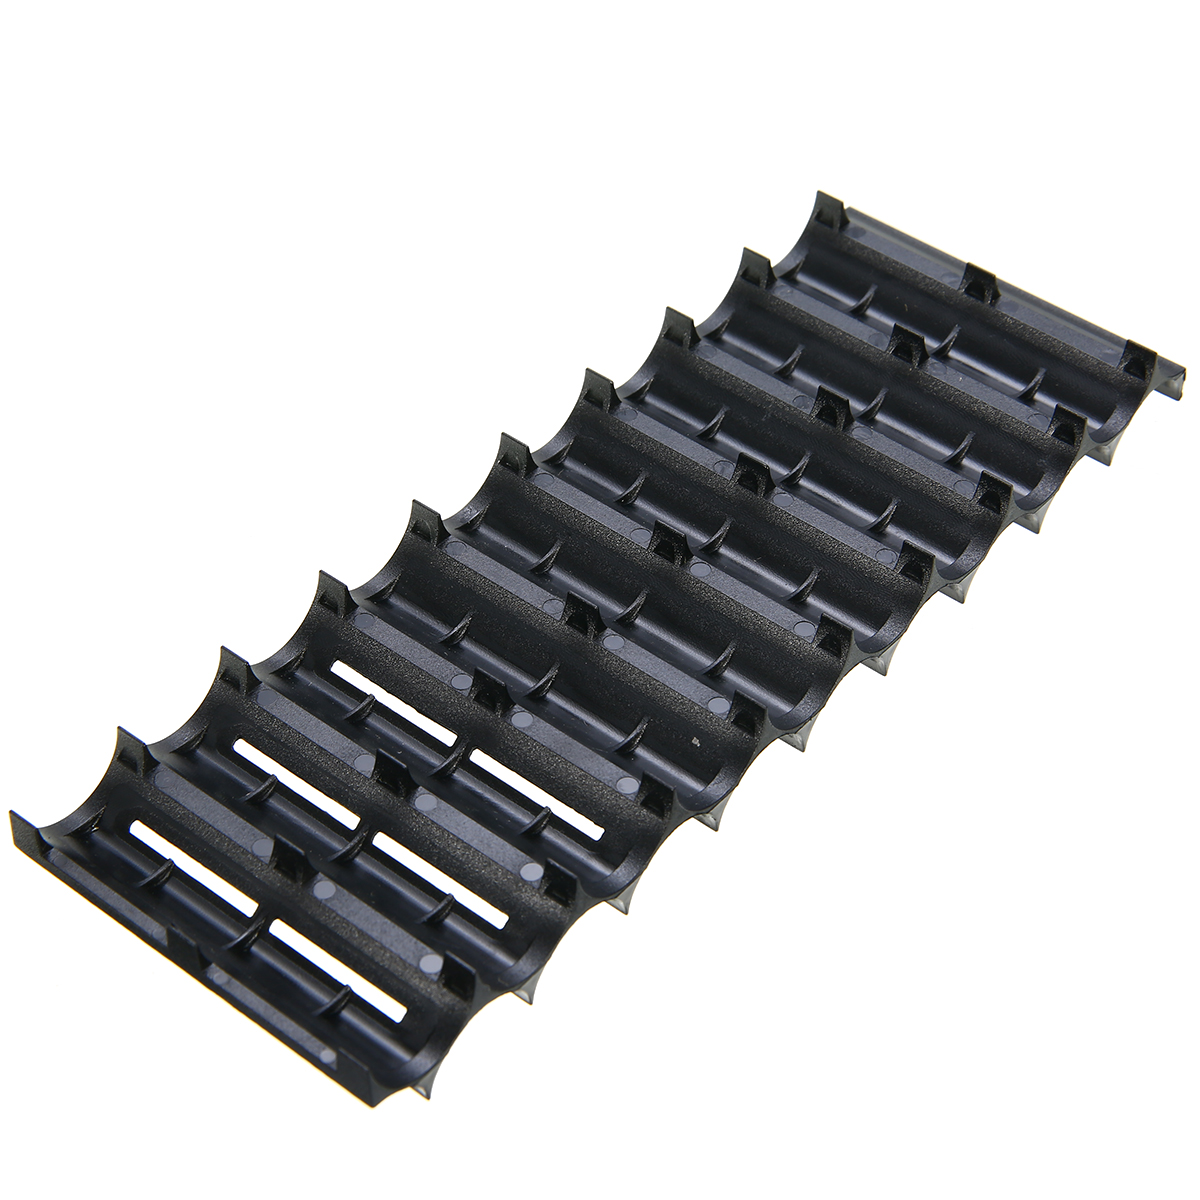 2pcs 10x Cell Plastic <font><b>18650</b></font> <font><b>Battery</b></font> Spacer <font><b>Holder</b></font> Black High Quality Battries <font><b>Cylindrical</b></font> Cell <font><b>Bracket</b></font> For <font><b>Battery</b></font> Mayitr image